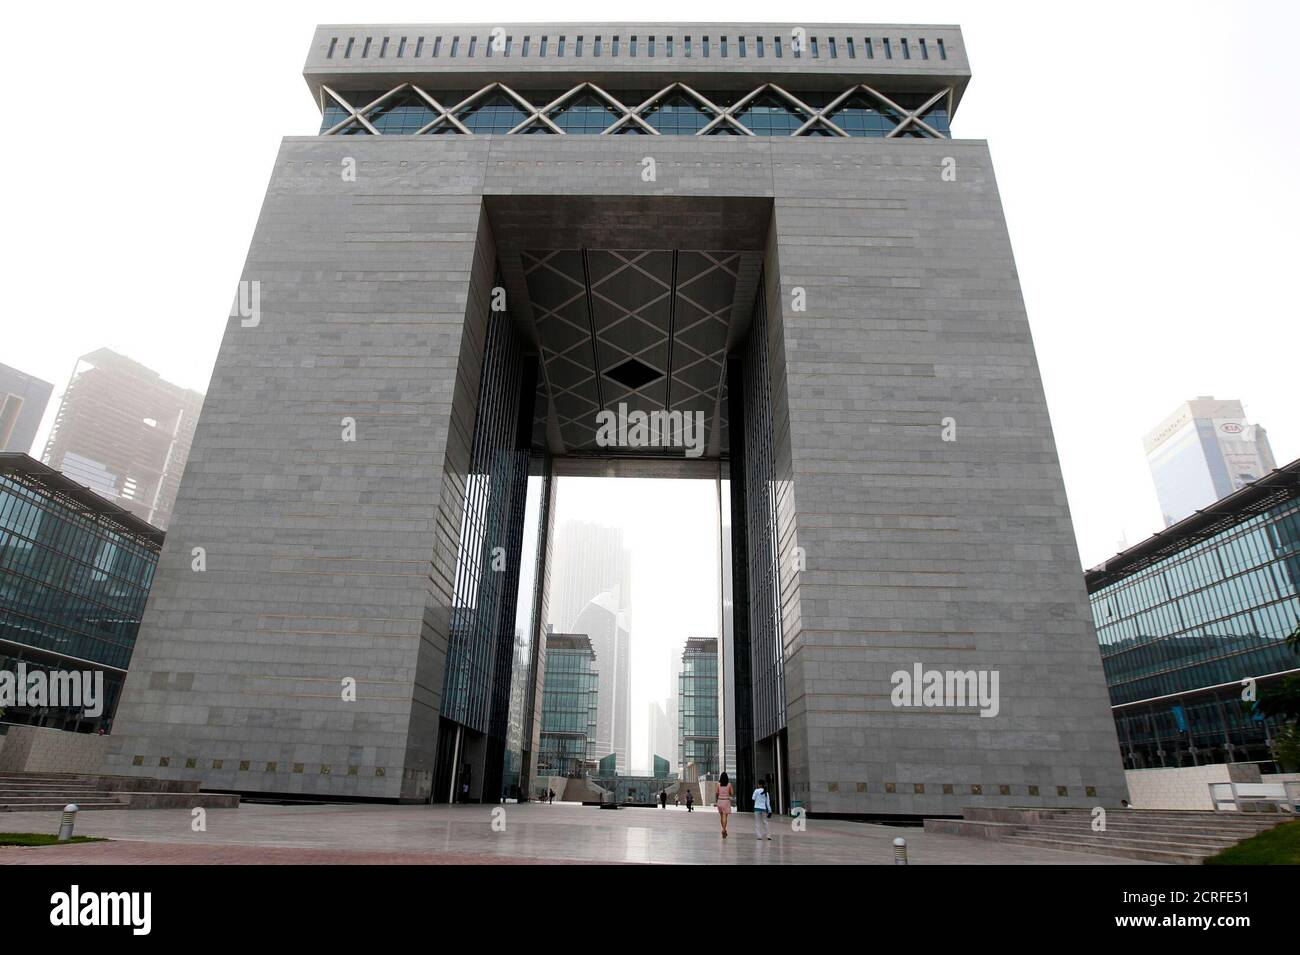 People walk near The Gate building at the financial and business district Dubai International Financial Center (DIFC) in Dubai, February 2, 2012. REUTERS/Jumana El Heloueh (UNITED ARAB EMIRATES - Tags: BUSINESS) Foto de stock